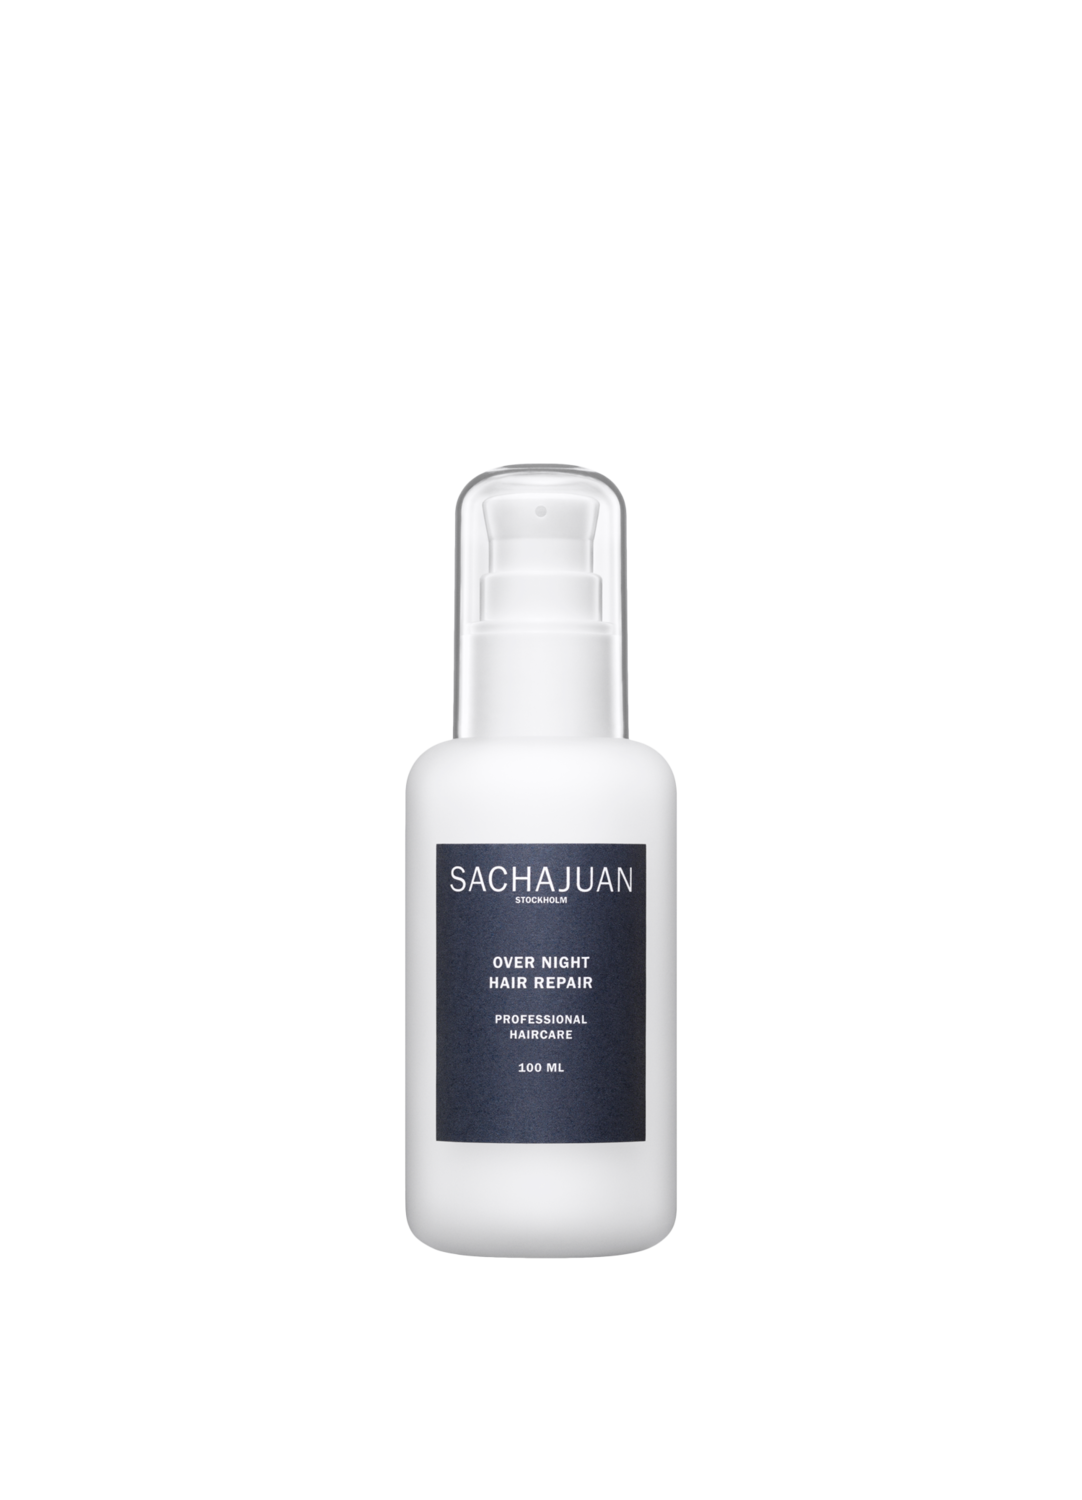 sachajuan overnight hair repair